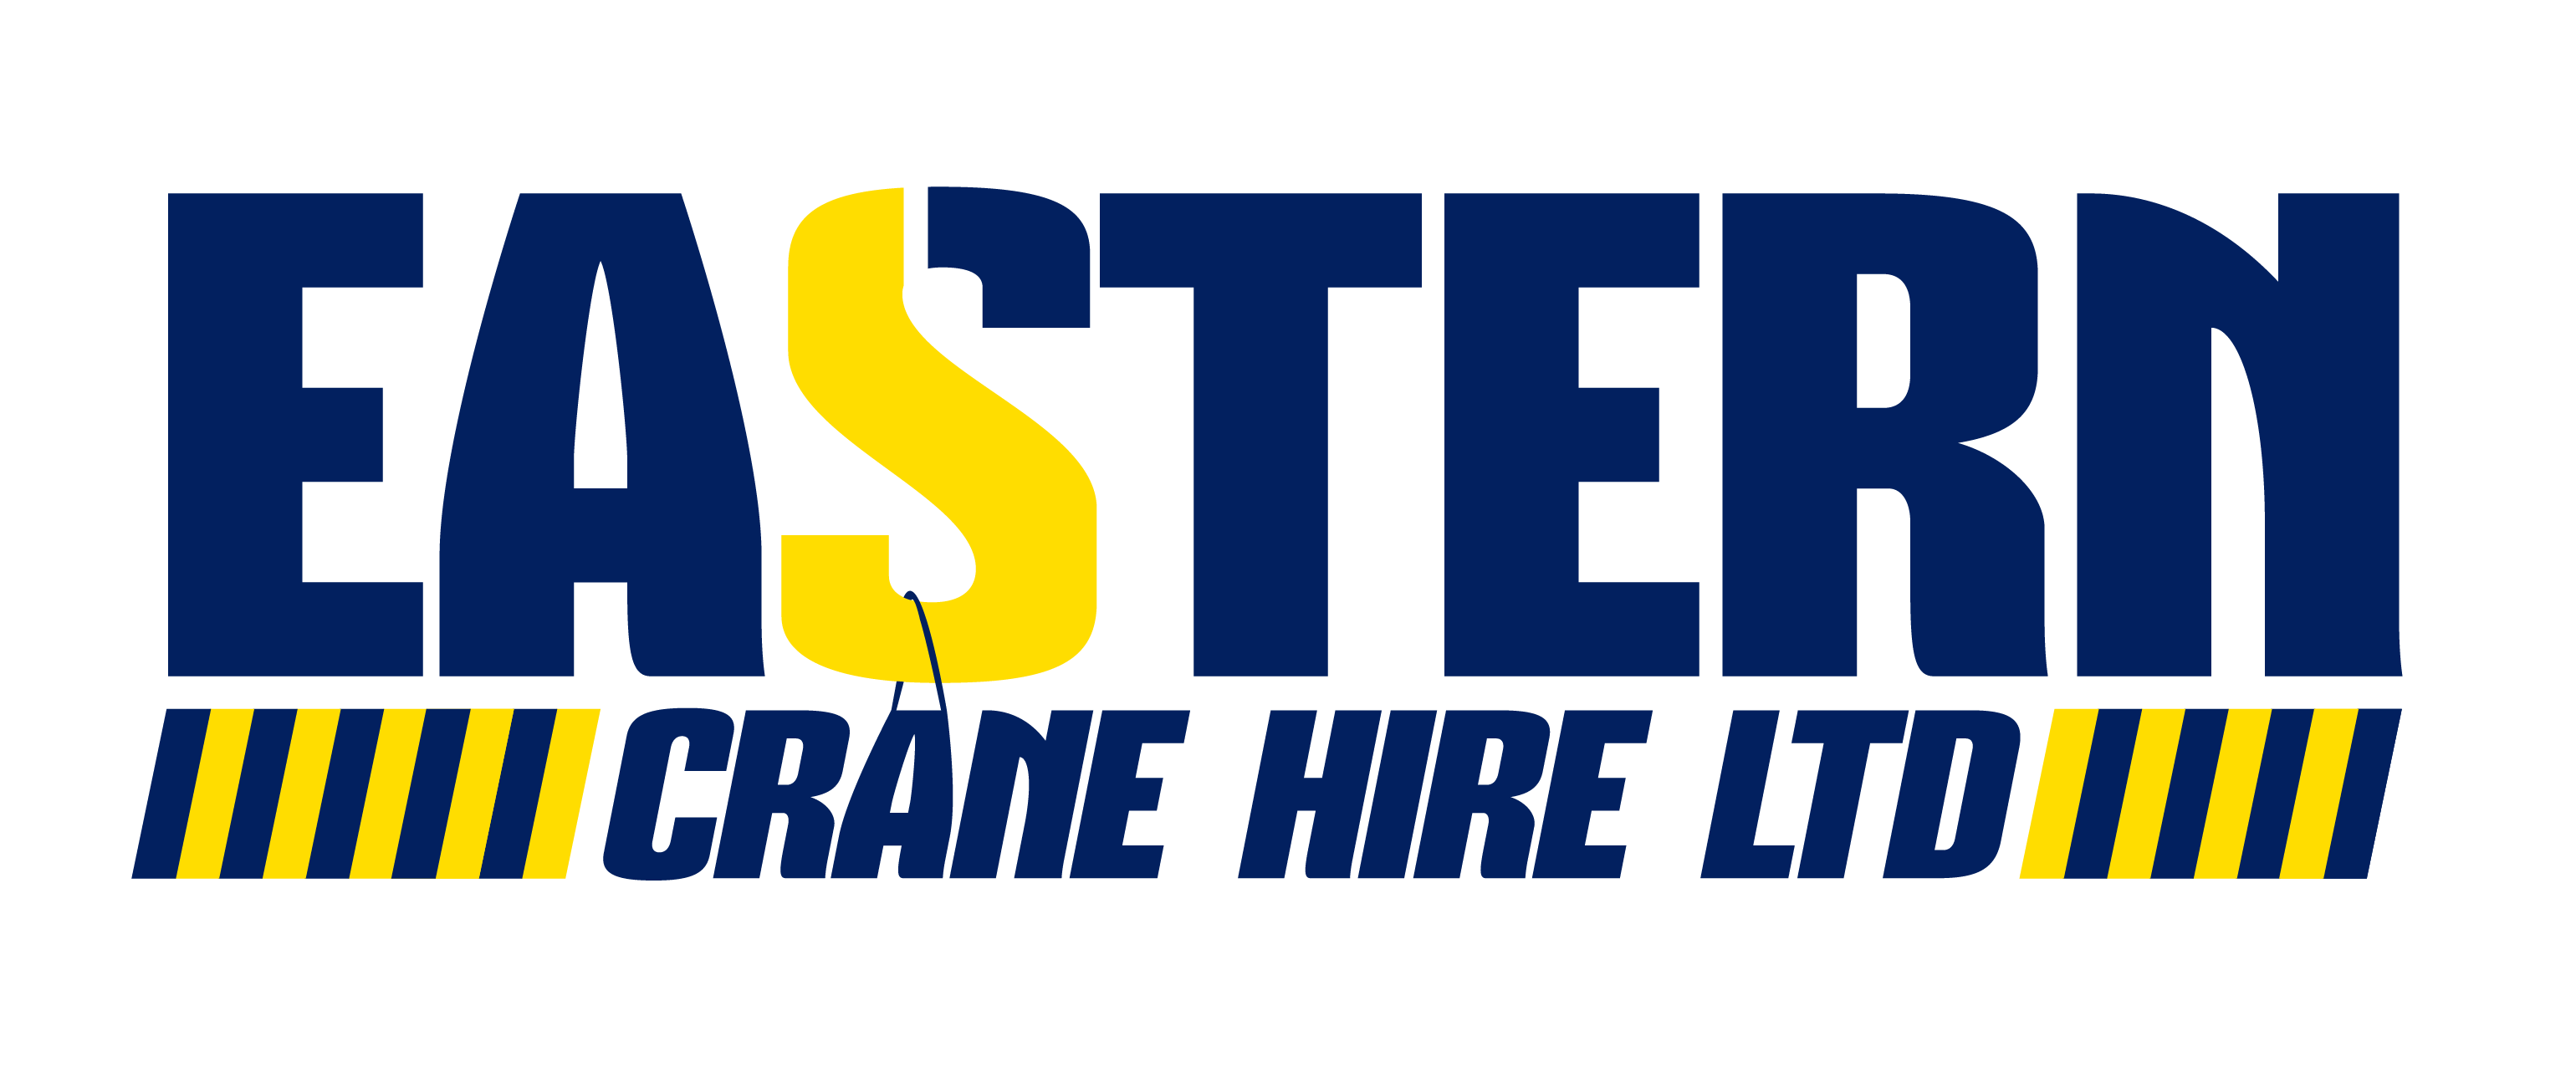 Eastern Crane Hire Ltd